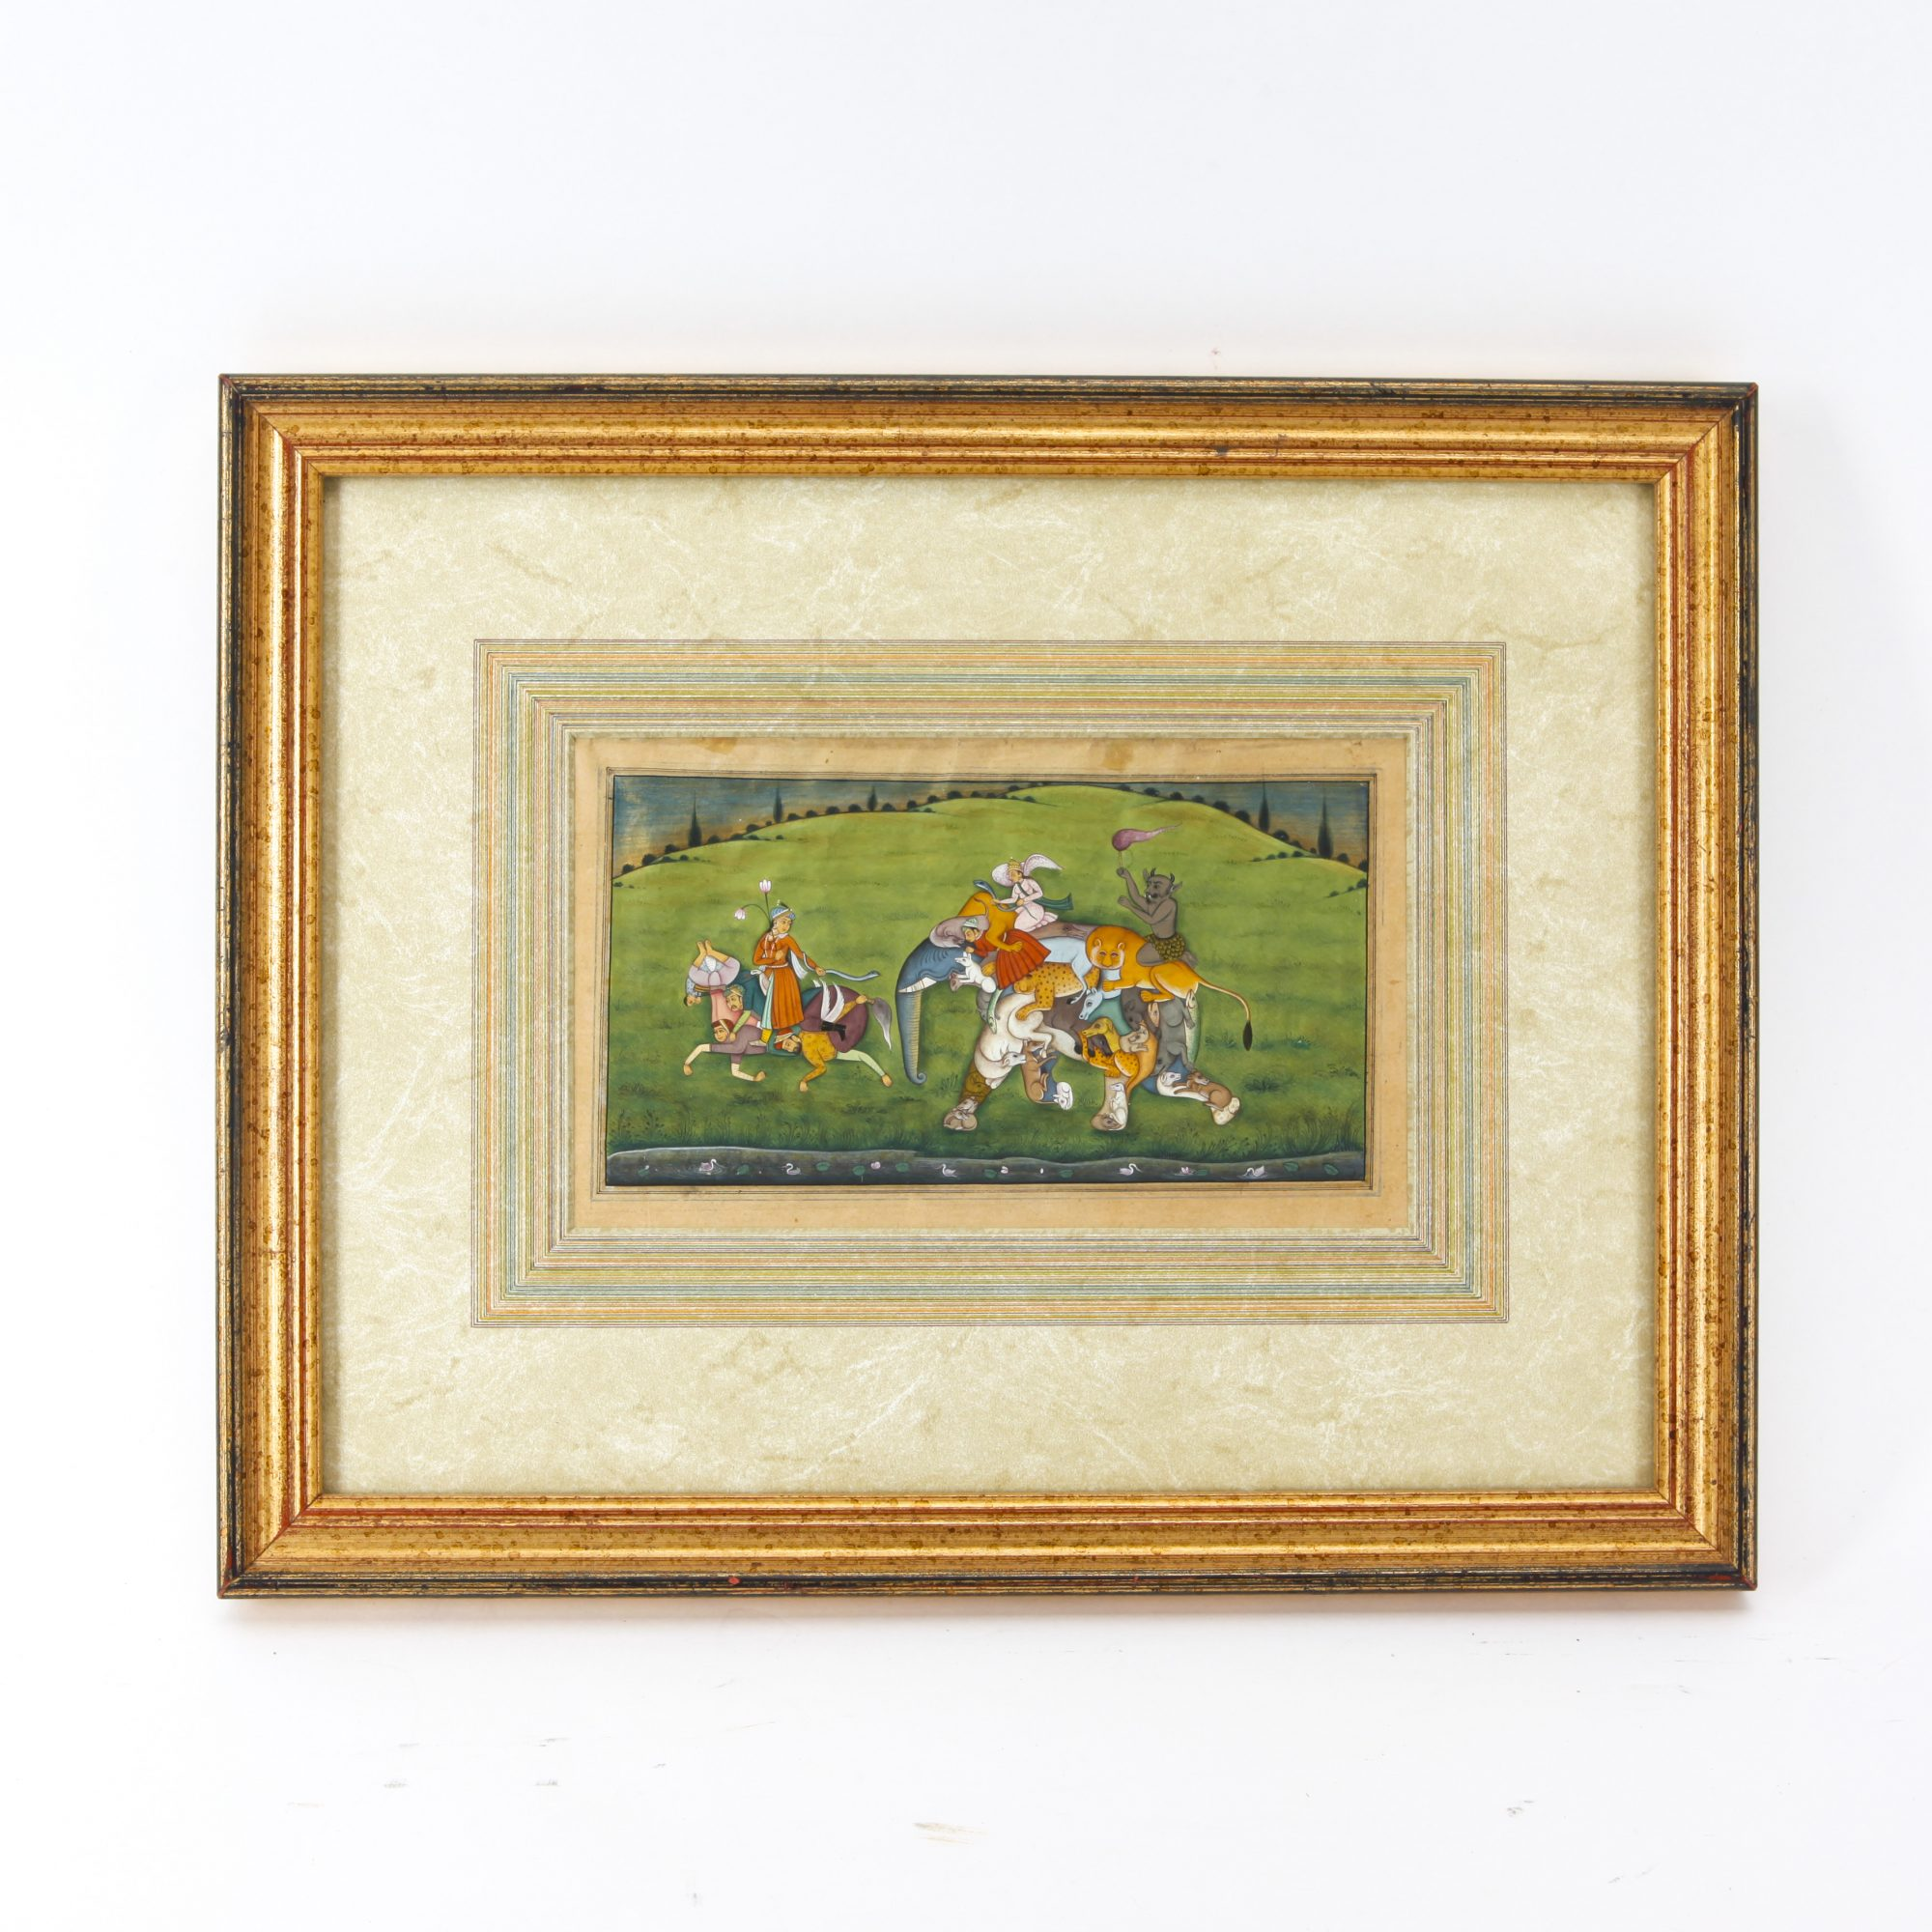 17TH CENTURY MUGHAL PERIOD MINIATURE PAINTING, INDIA